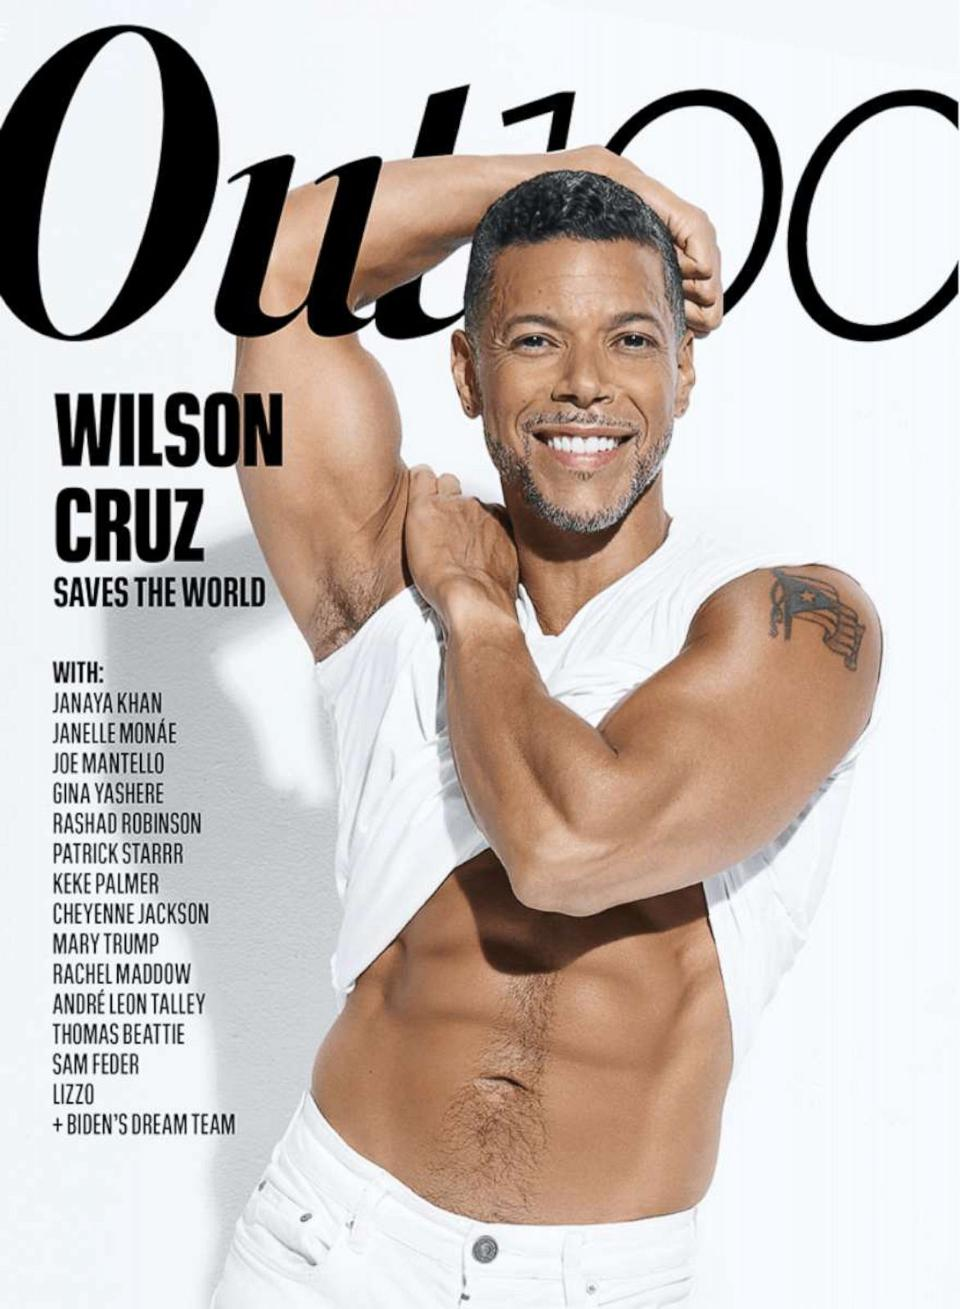 Wilson Cruz has a fantastic body and he shows it off here on the cover of Out Magazine.